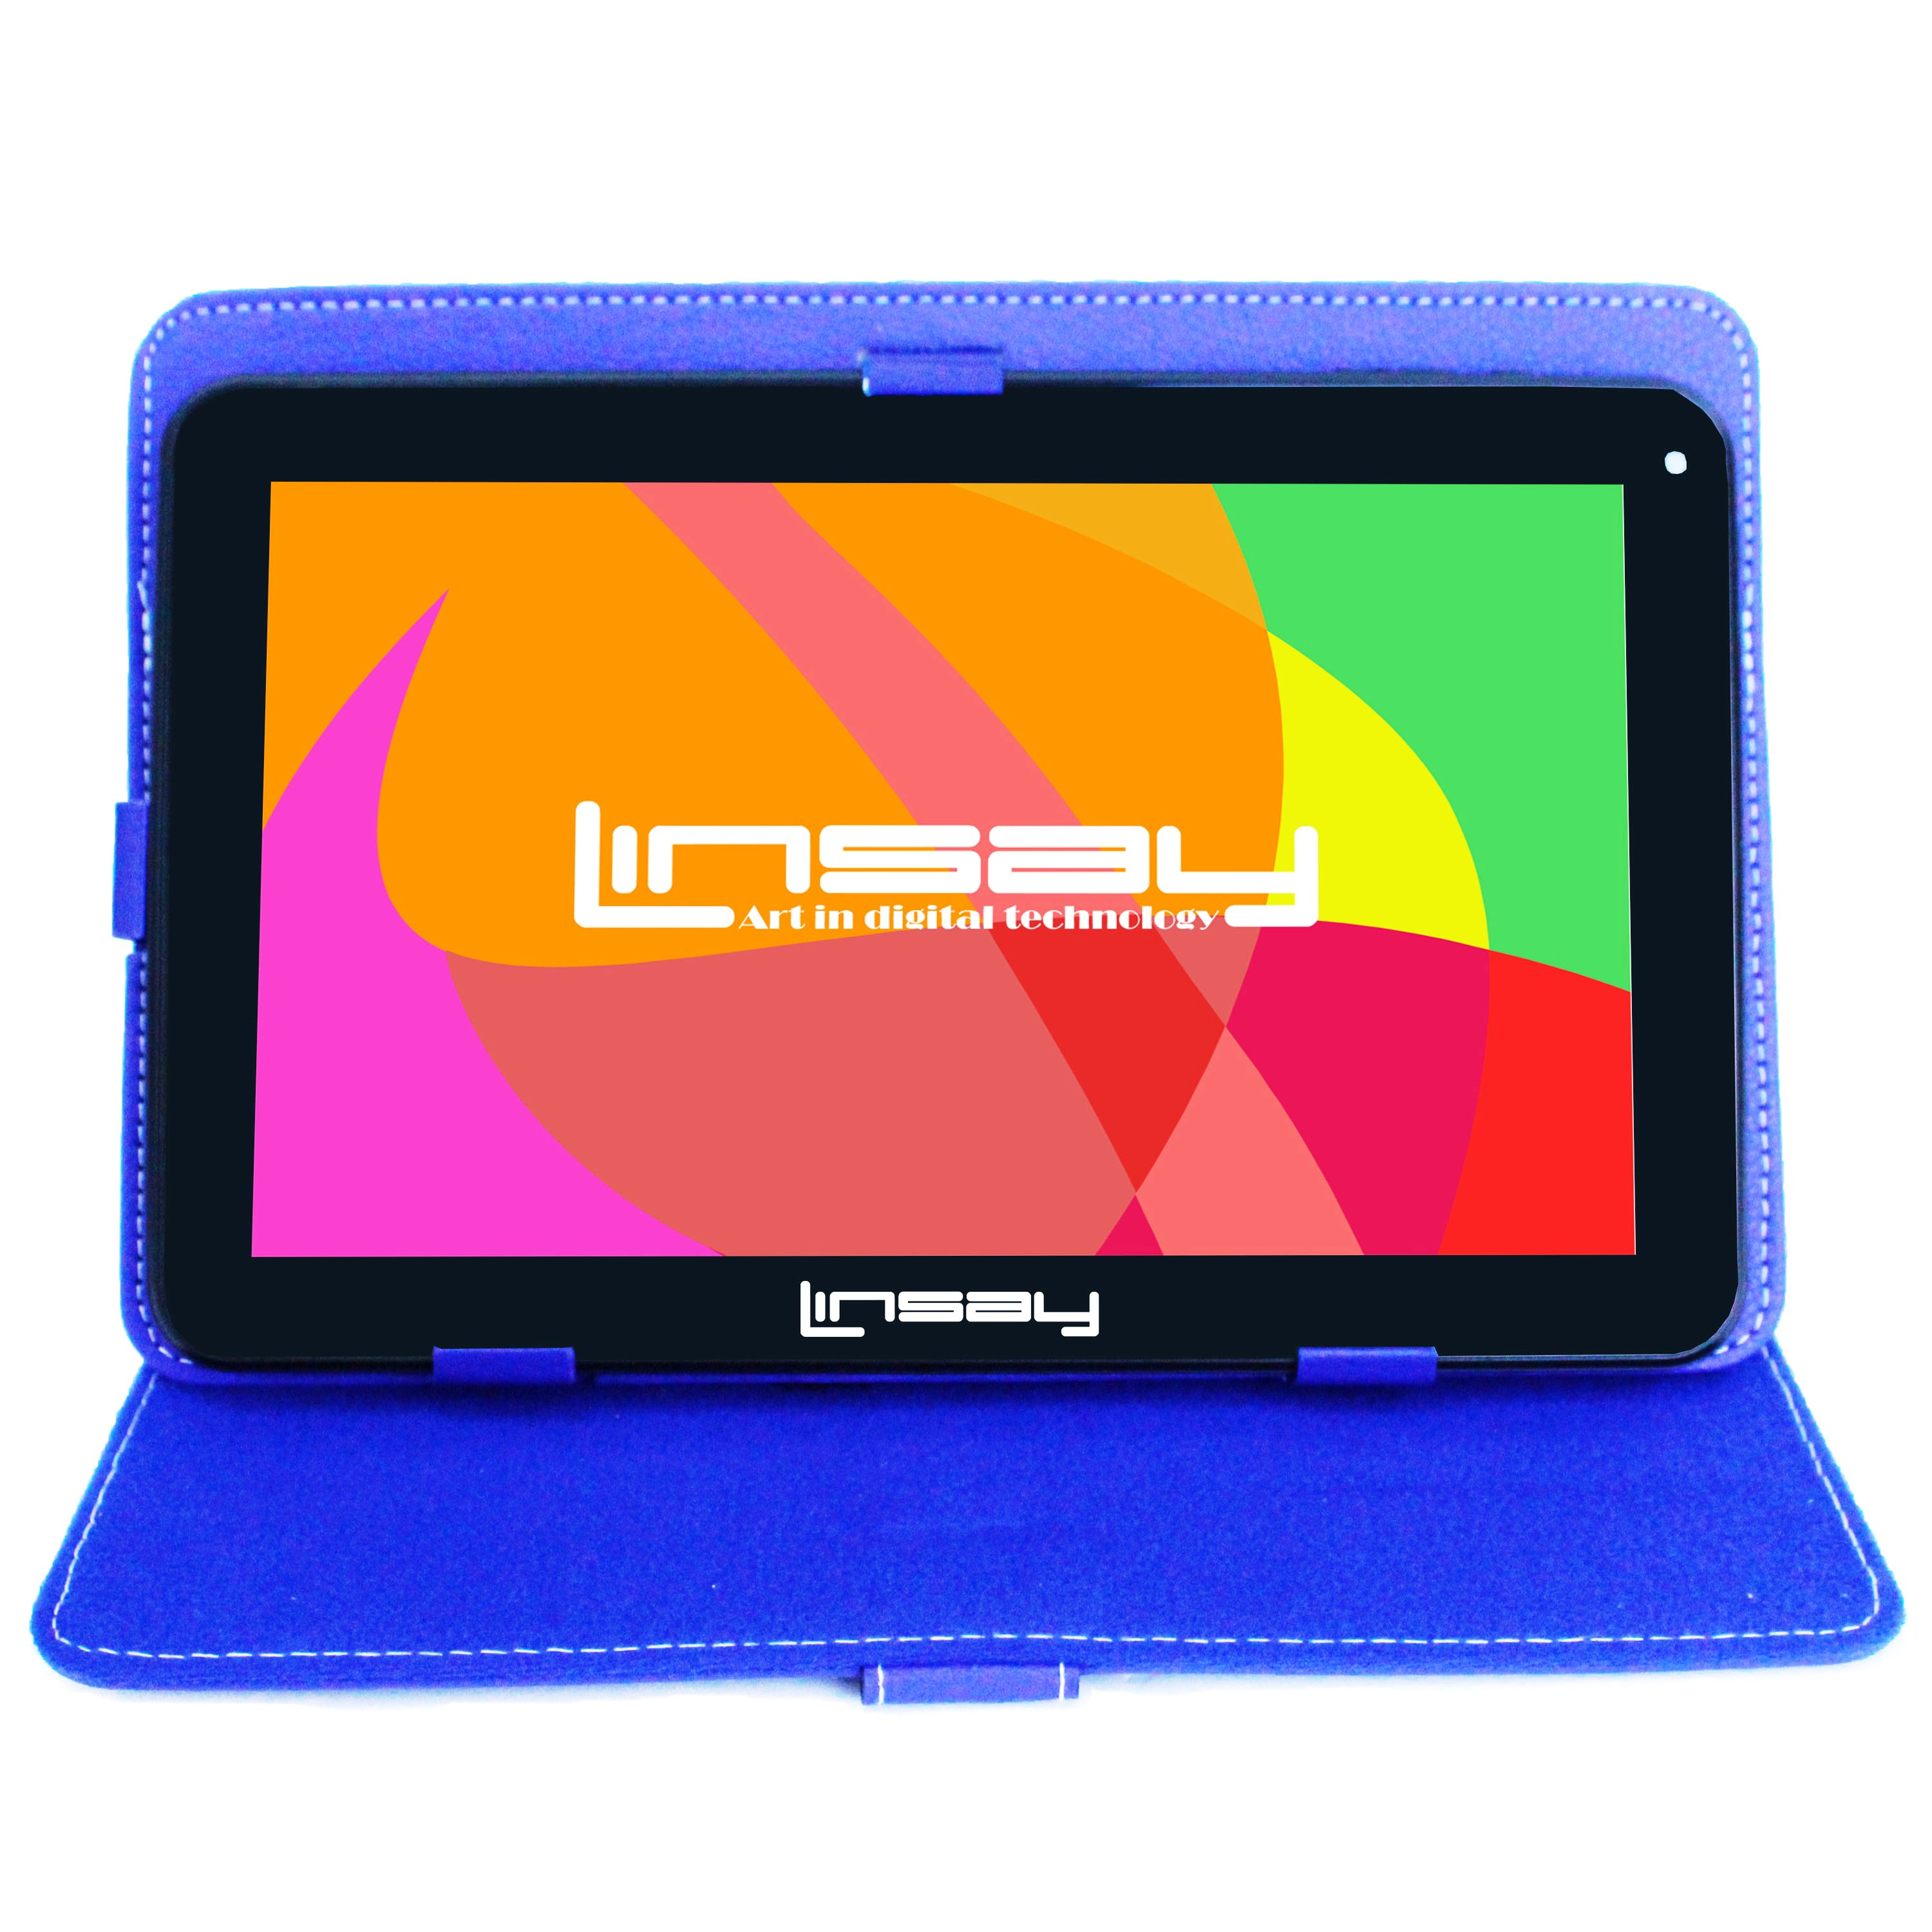 LINSAY 10.1 Touchscreen Quad Core Tablet PC Featuring Android 4.4 (KitKat) Operating System Bundle with Blue Case